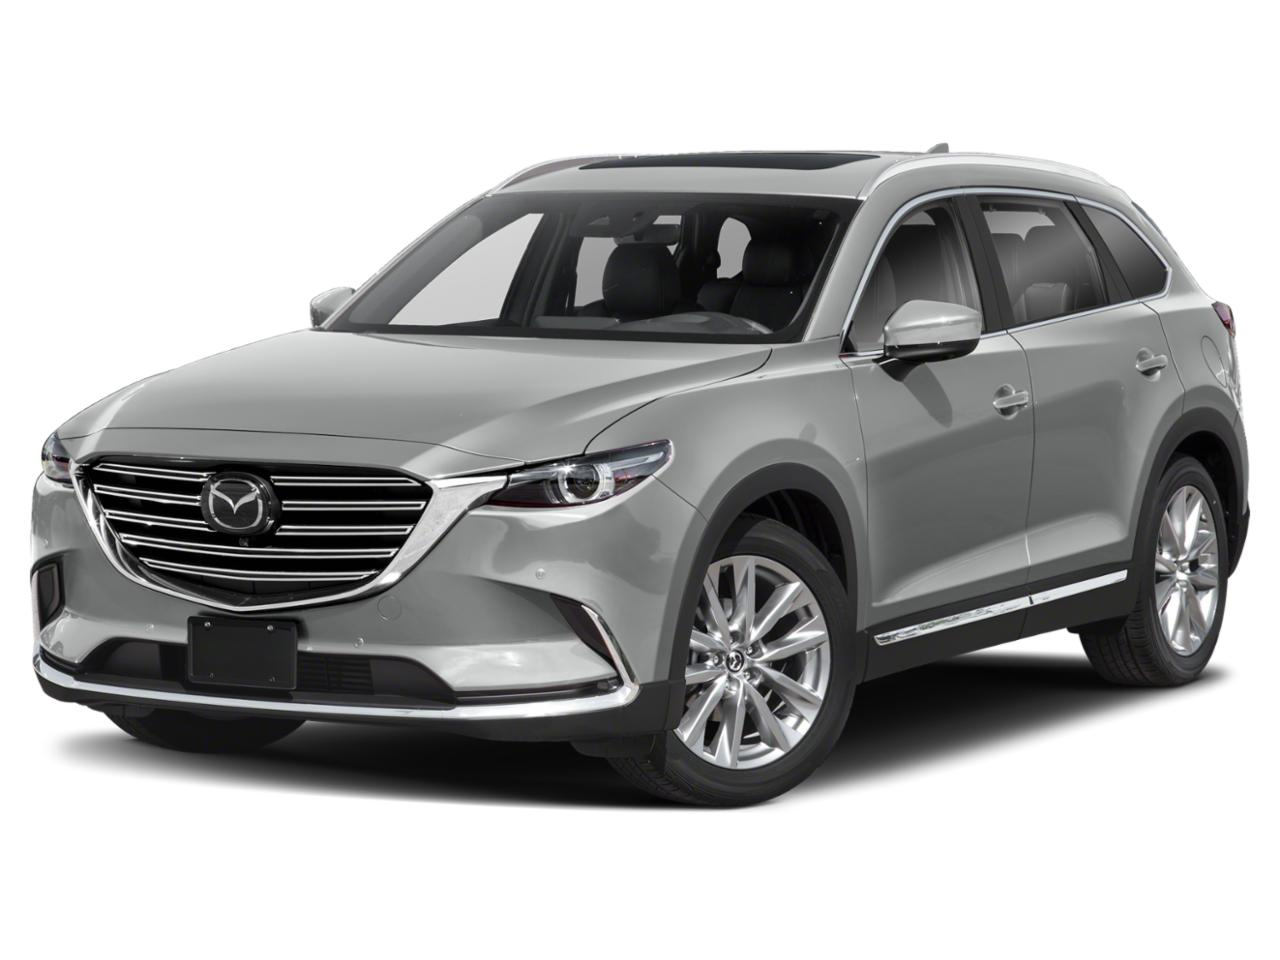 2021 Mazda CX-9 Vehicle Photo in Plainfield, IL 60586